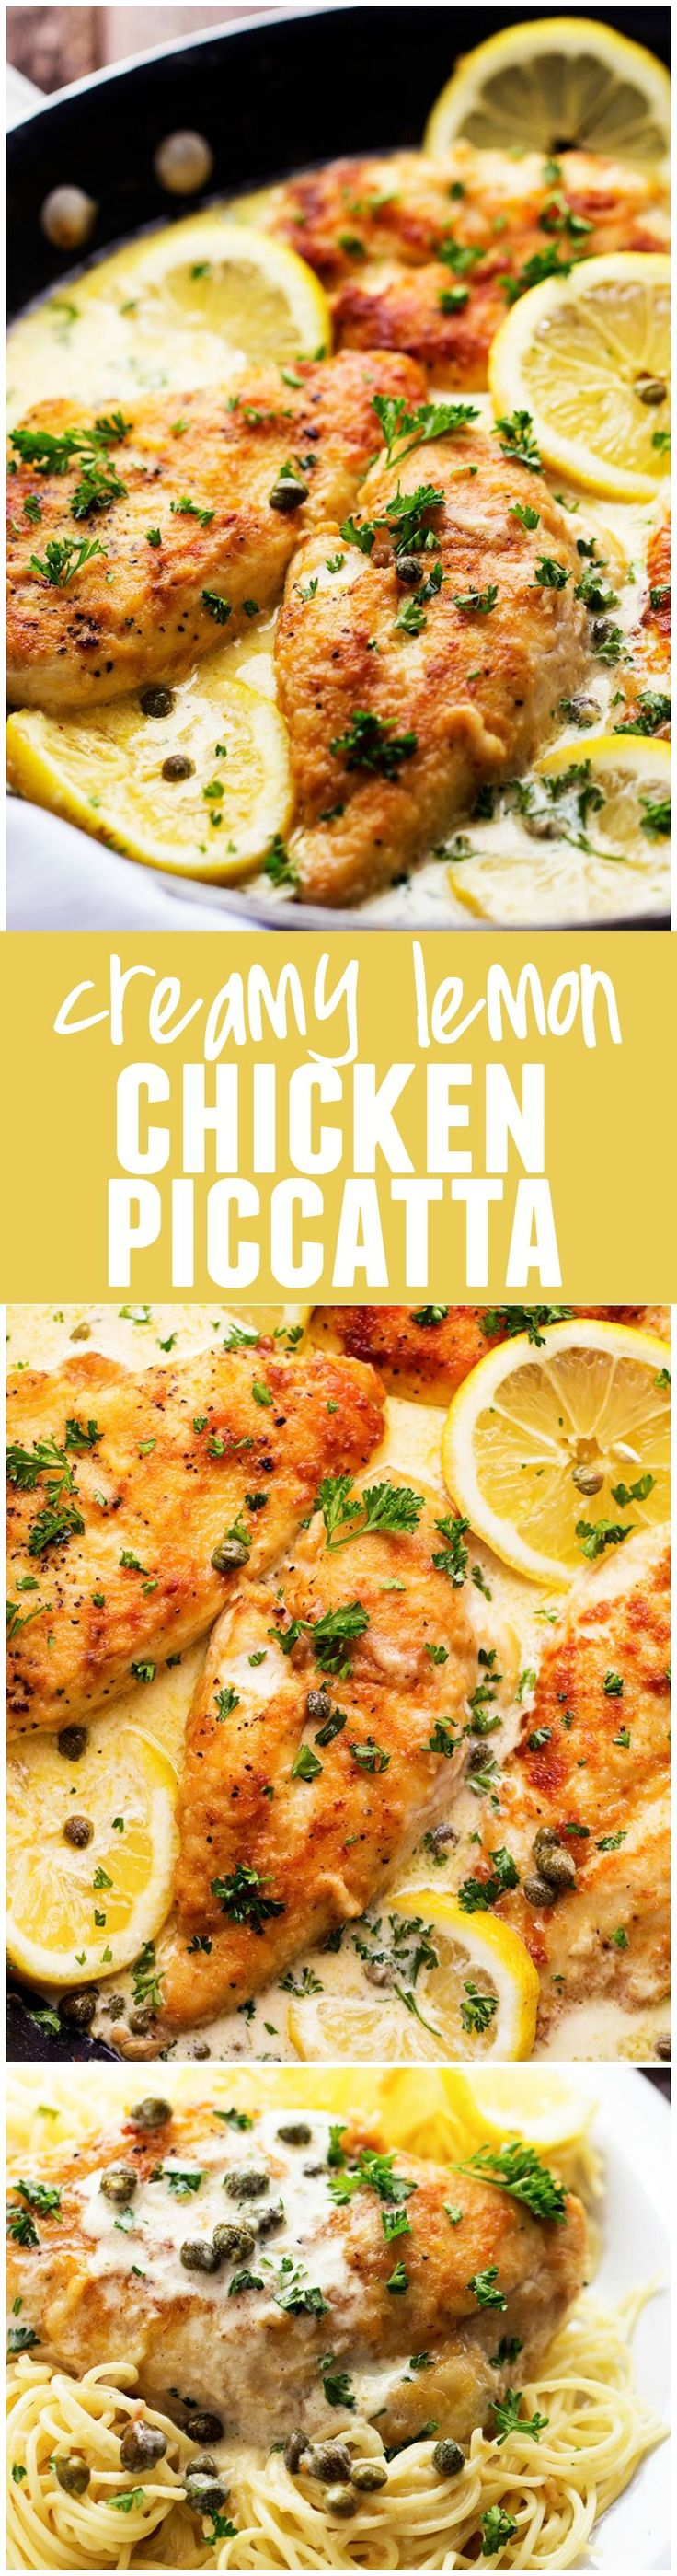 This Creamy Lemon Chicken Piccatta is an amazing one pot meal that is on the dinner table in 30 minutes! I used about 3 tablespoons of bottled lemon juice, a little chicken bouillon and thickened the sauce with cornstarch.